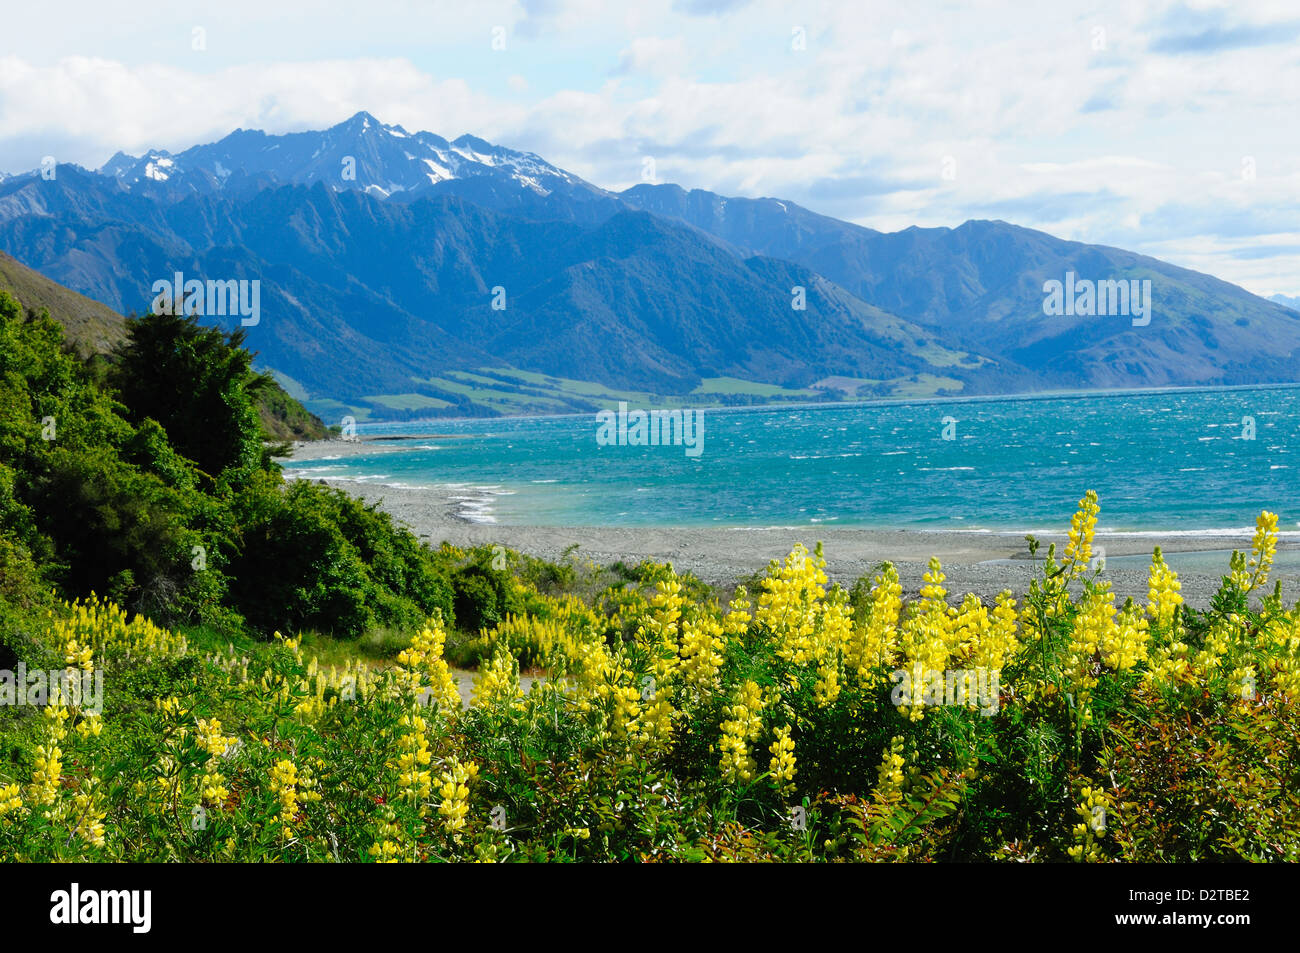 Lake Te Anau, Southland, South Island, New Zealand, Pacific - Stock Image